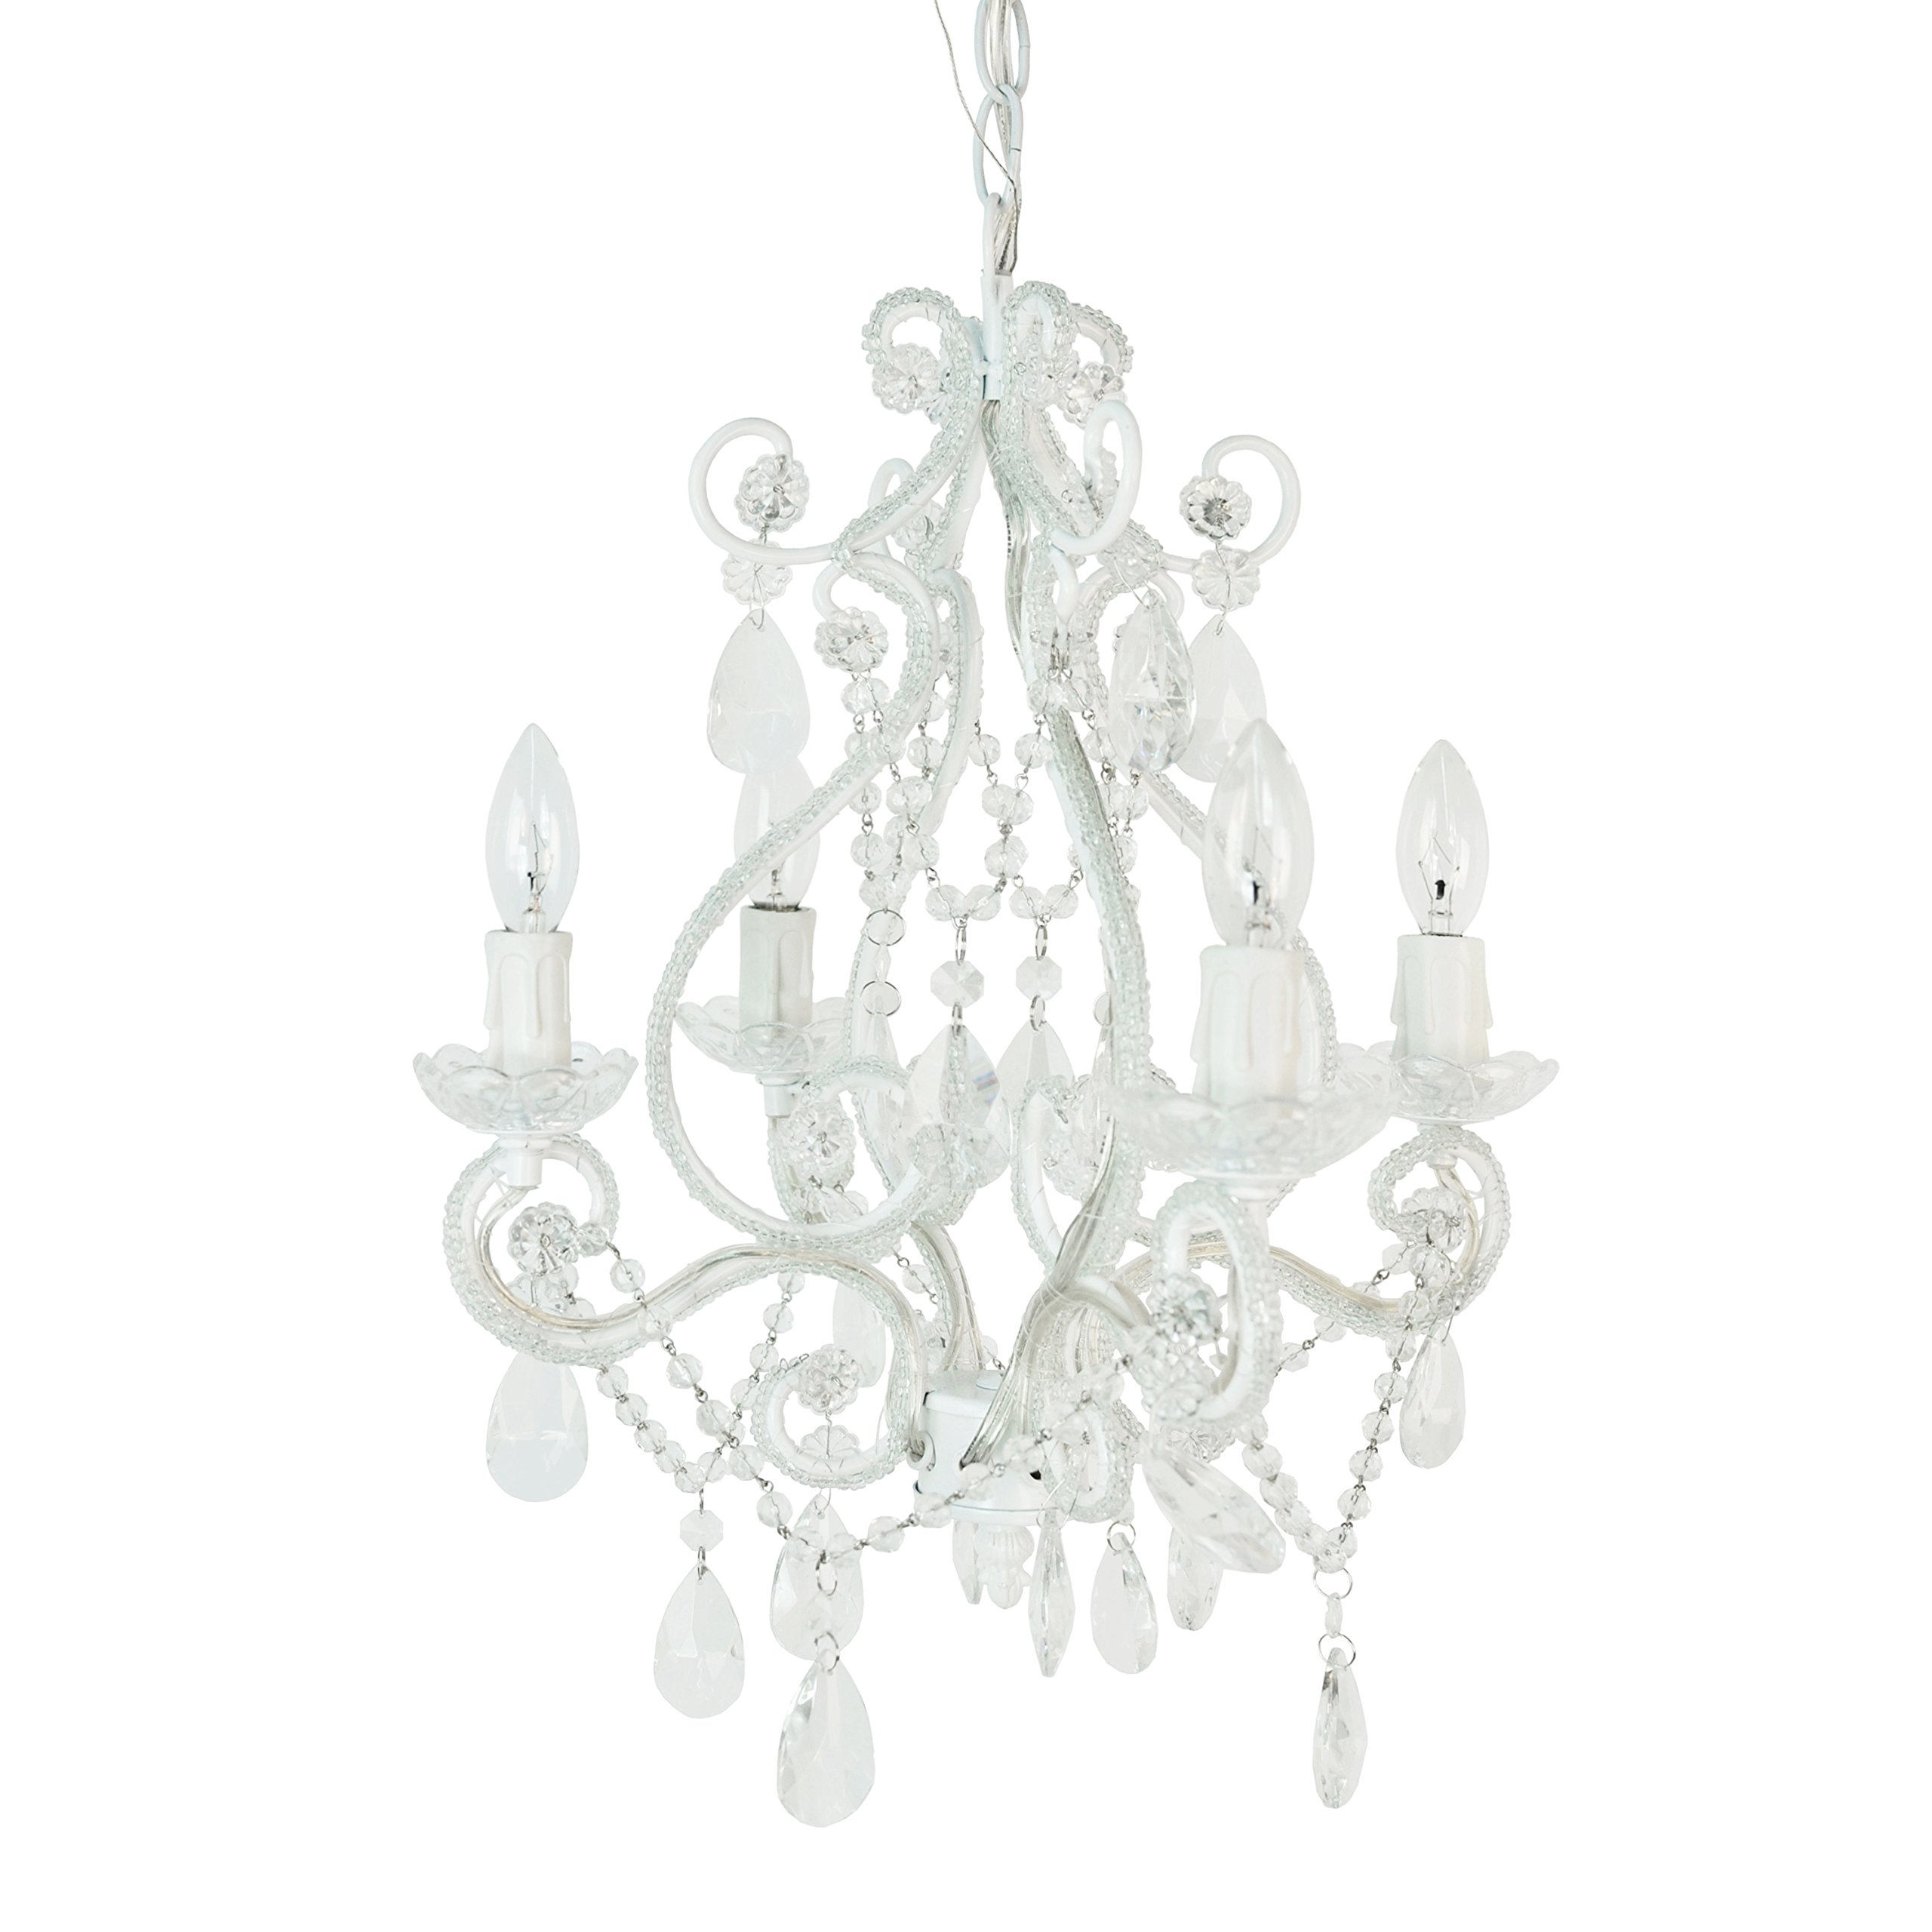 Tadpoles 4-Bulb Vintage Plug-In or Hardwired Mini-Chandelier, White Diamond by Tadpoles (Image #3)